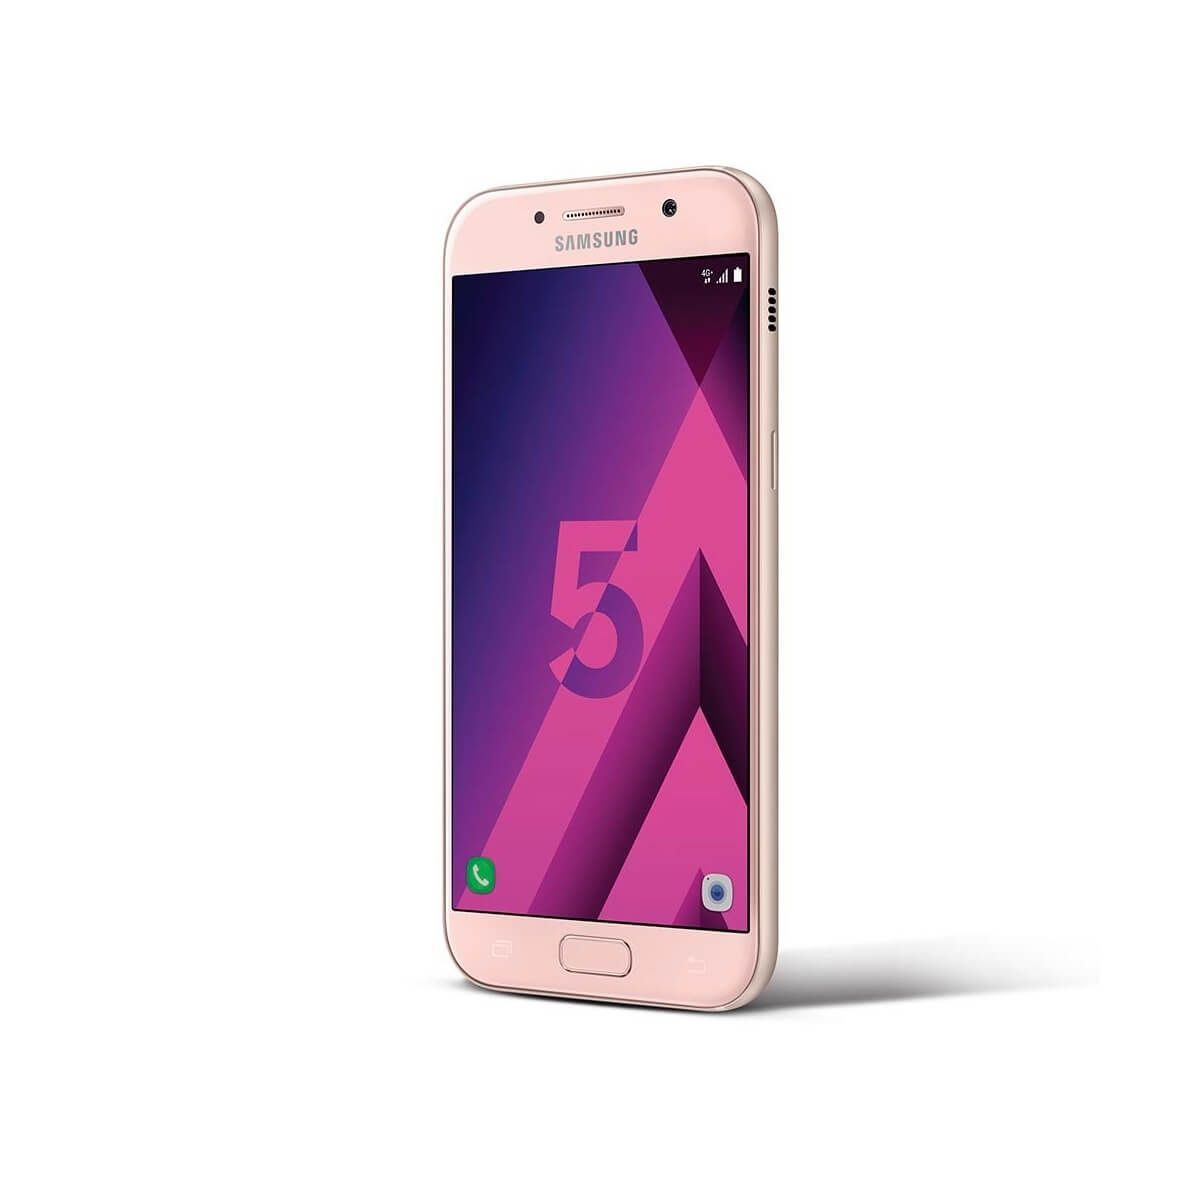 samsung galaxy a5 2017 caracteristicas 32gb rose gold. Black Bedroom Furniture Sets. Home Design Ideas